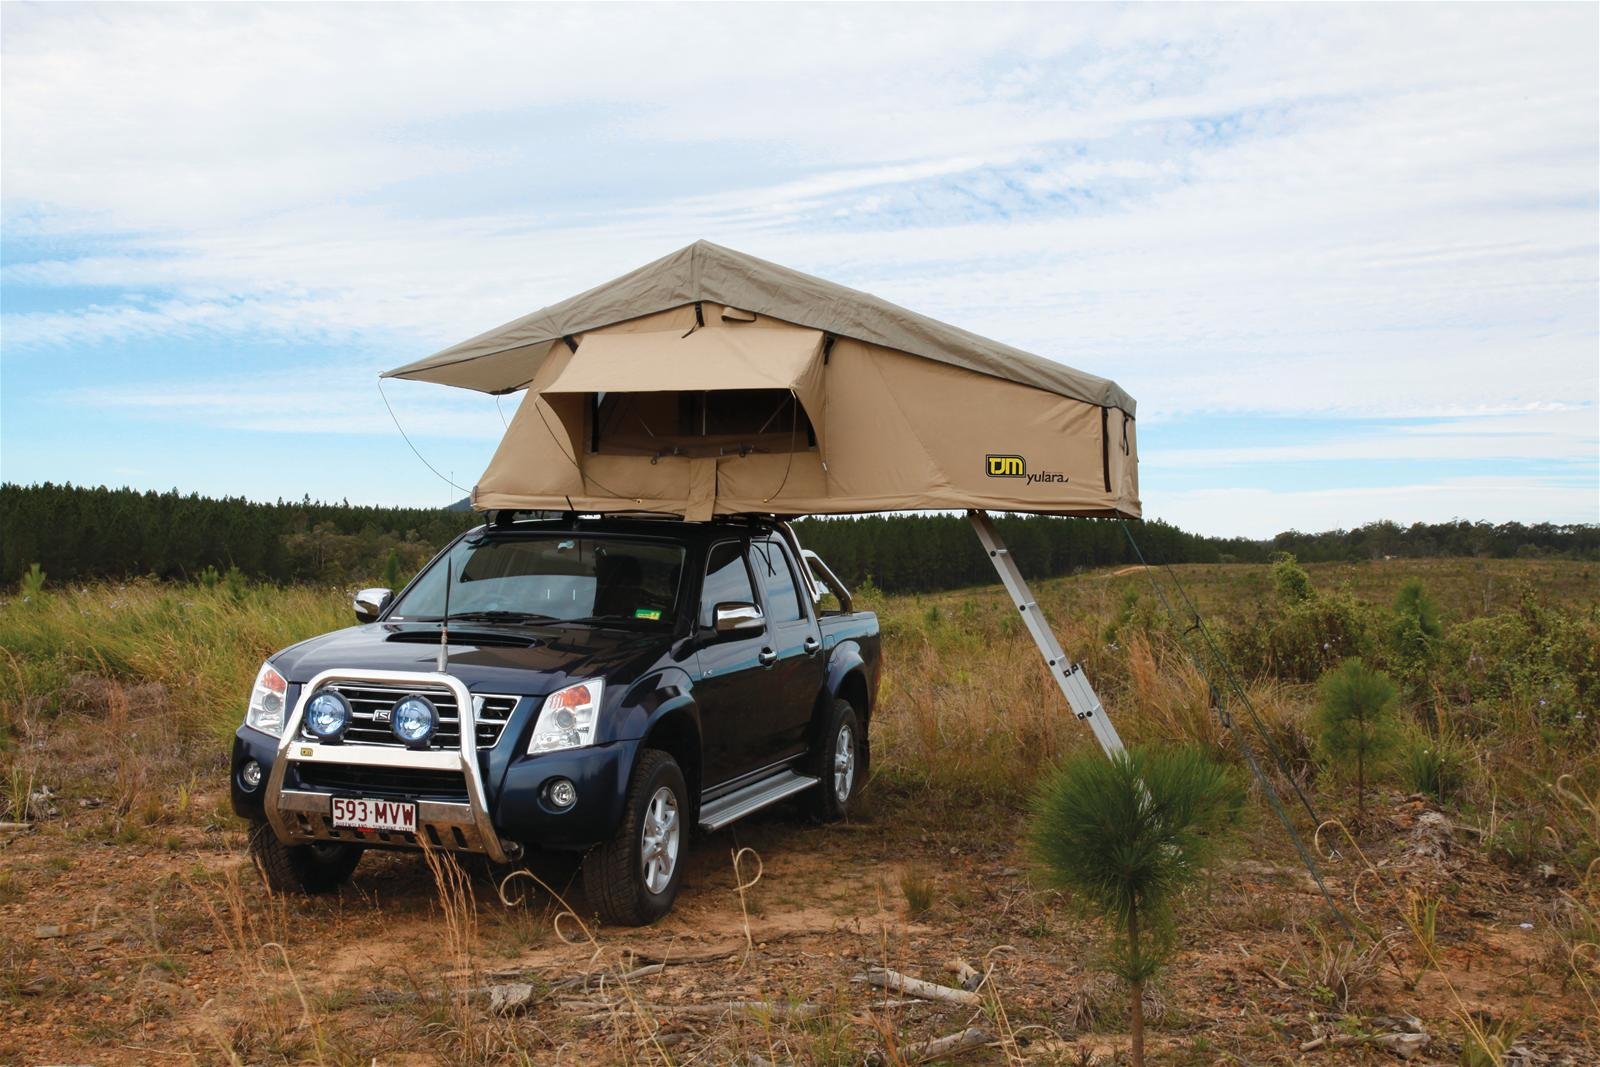 TJM Off-Road Yulara Roof Top Tent